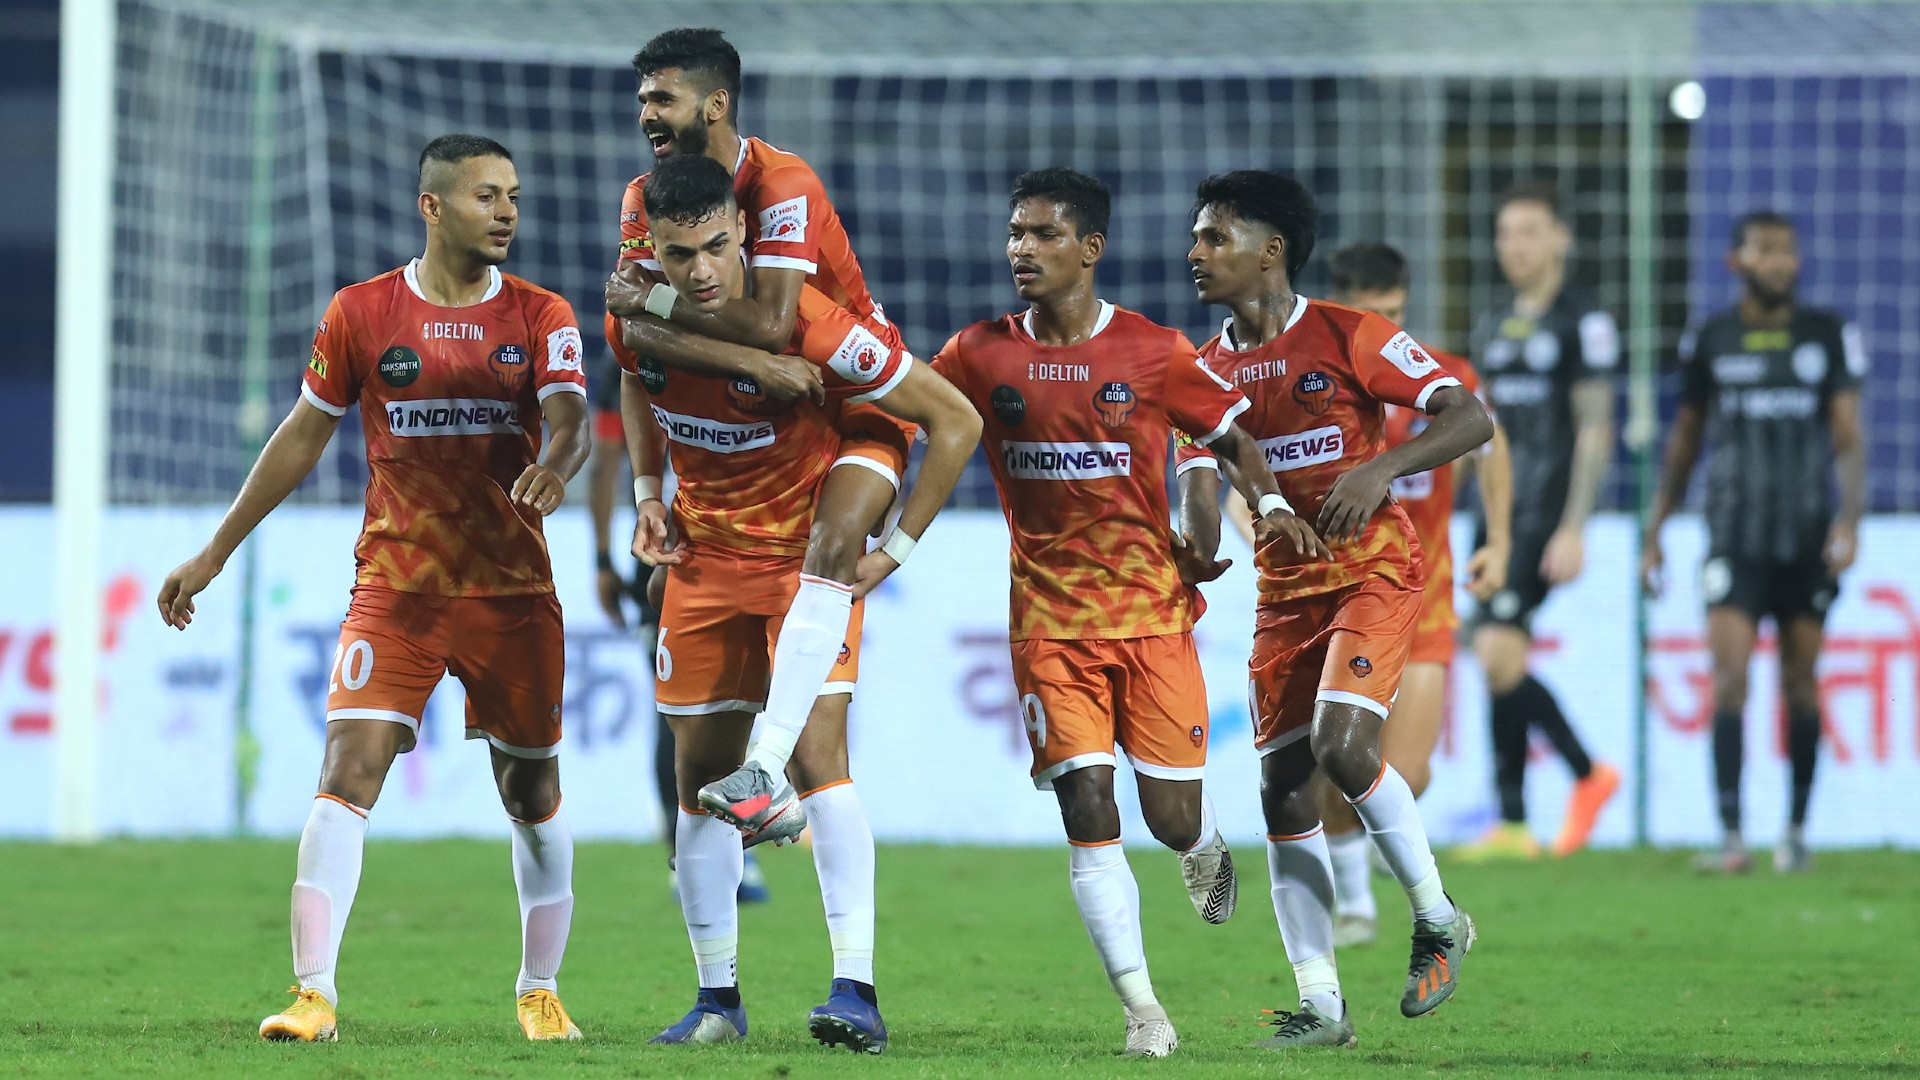 AFC Champions League: Who are FC Goa's opponents in Group E?